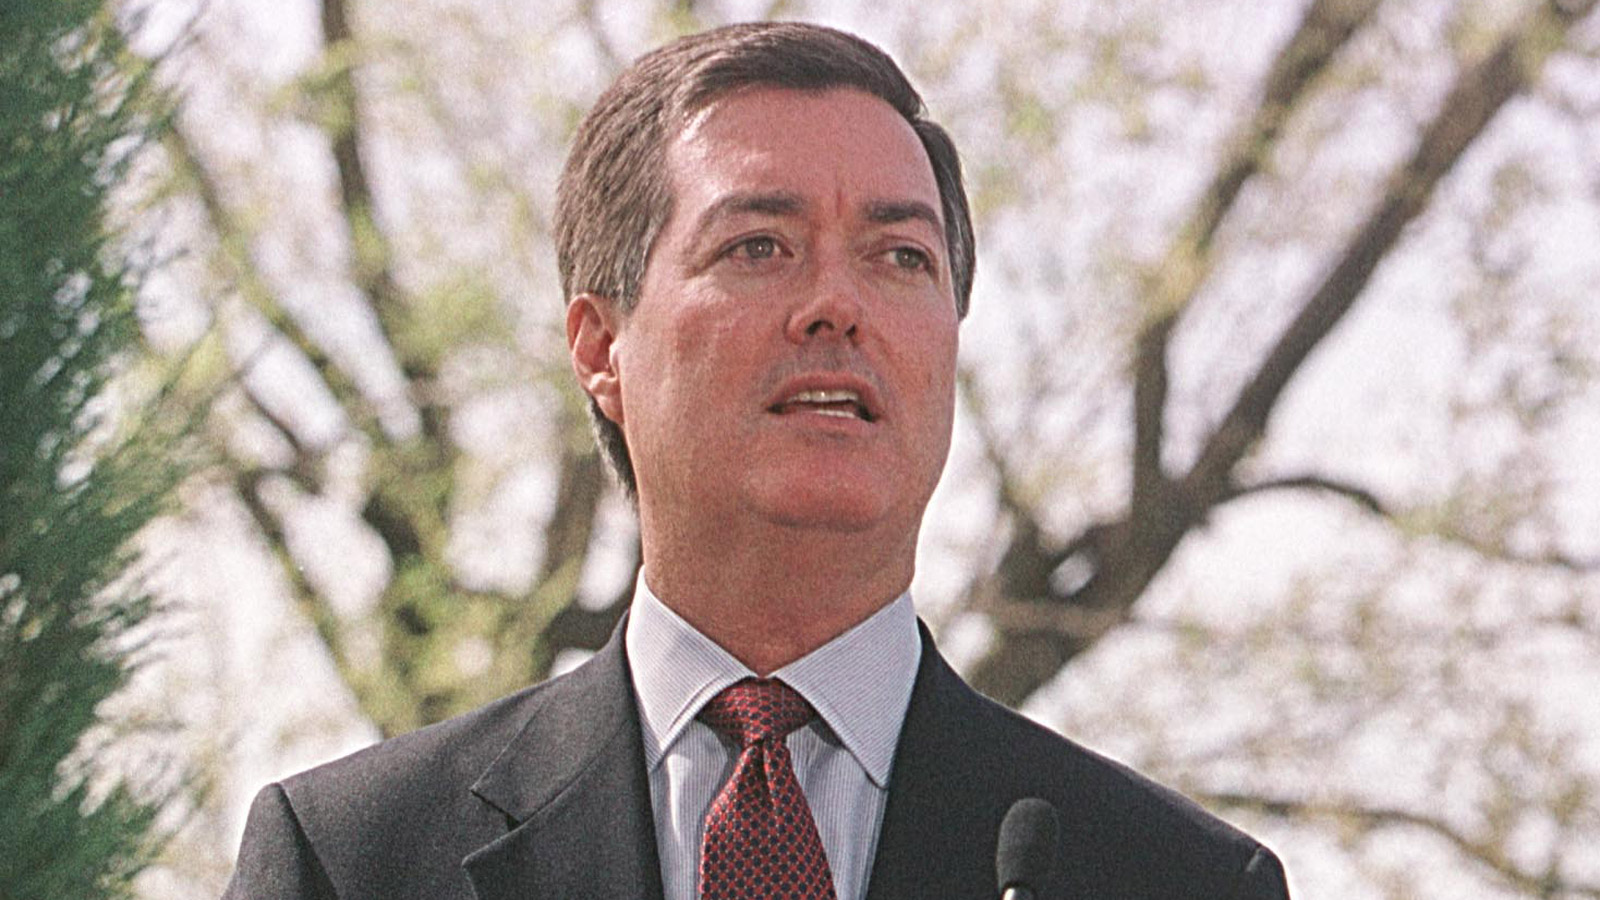 Colorado Gov. Bill Owens in 2001 (credit: Michael Smith/Newsmakers)